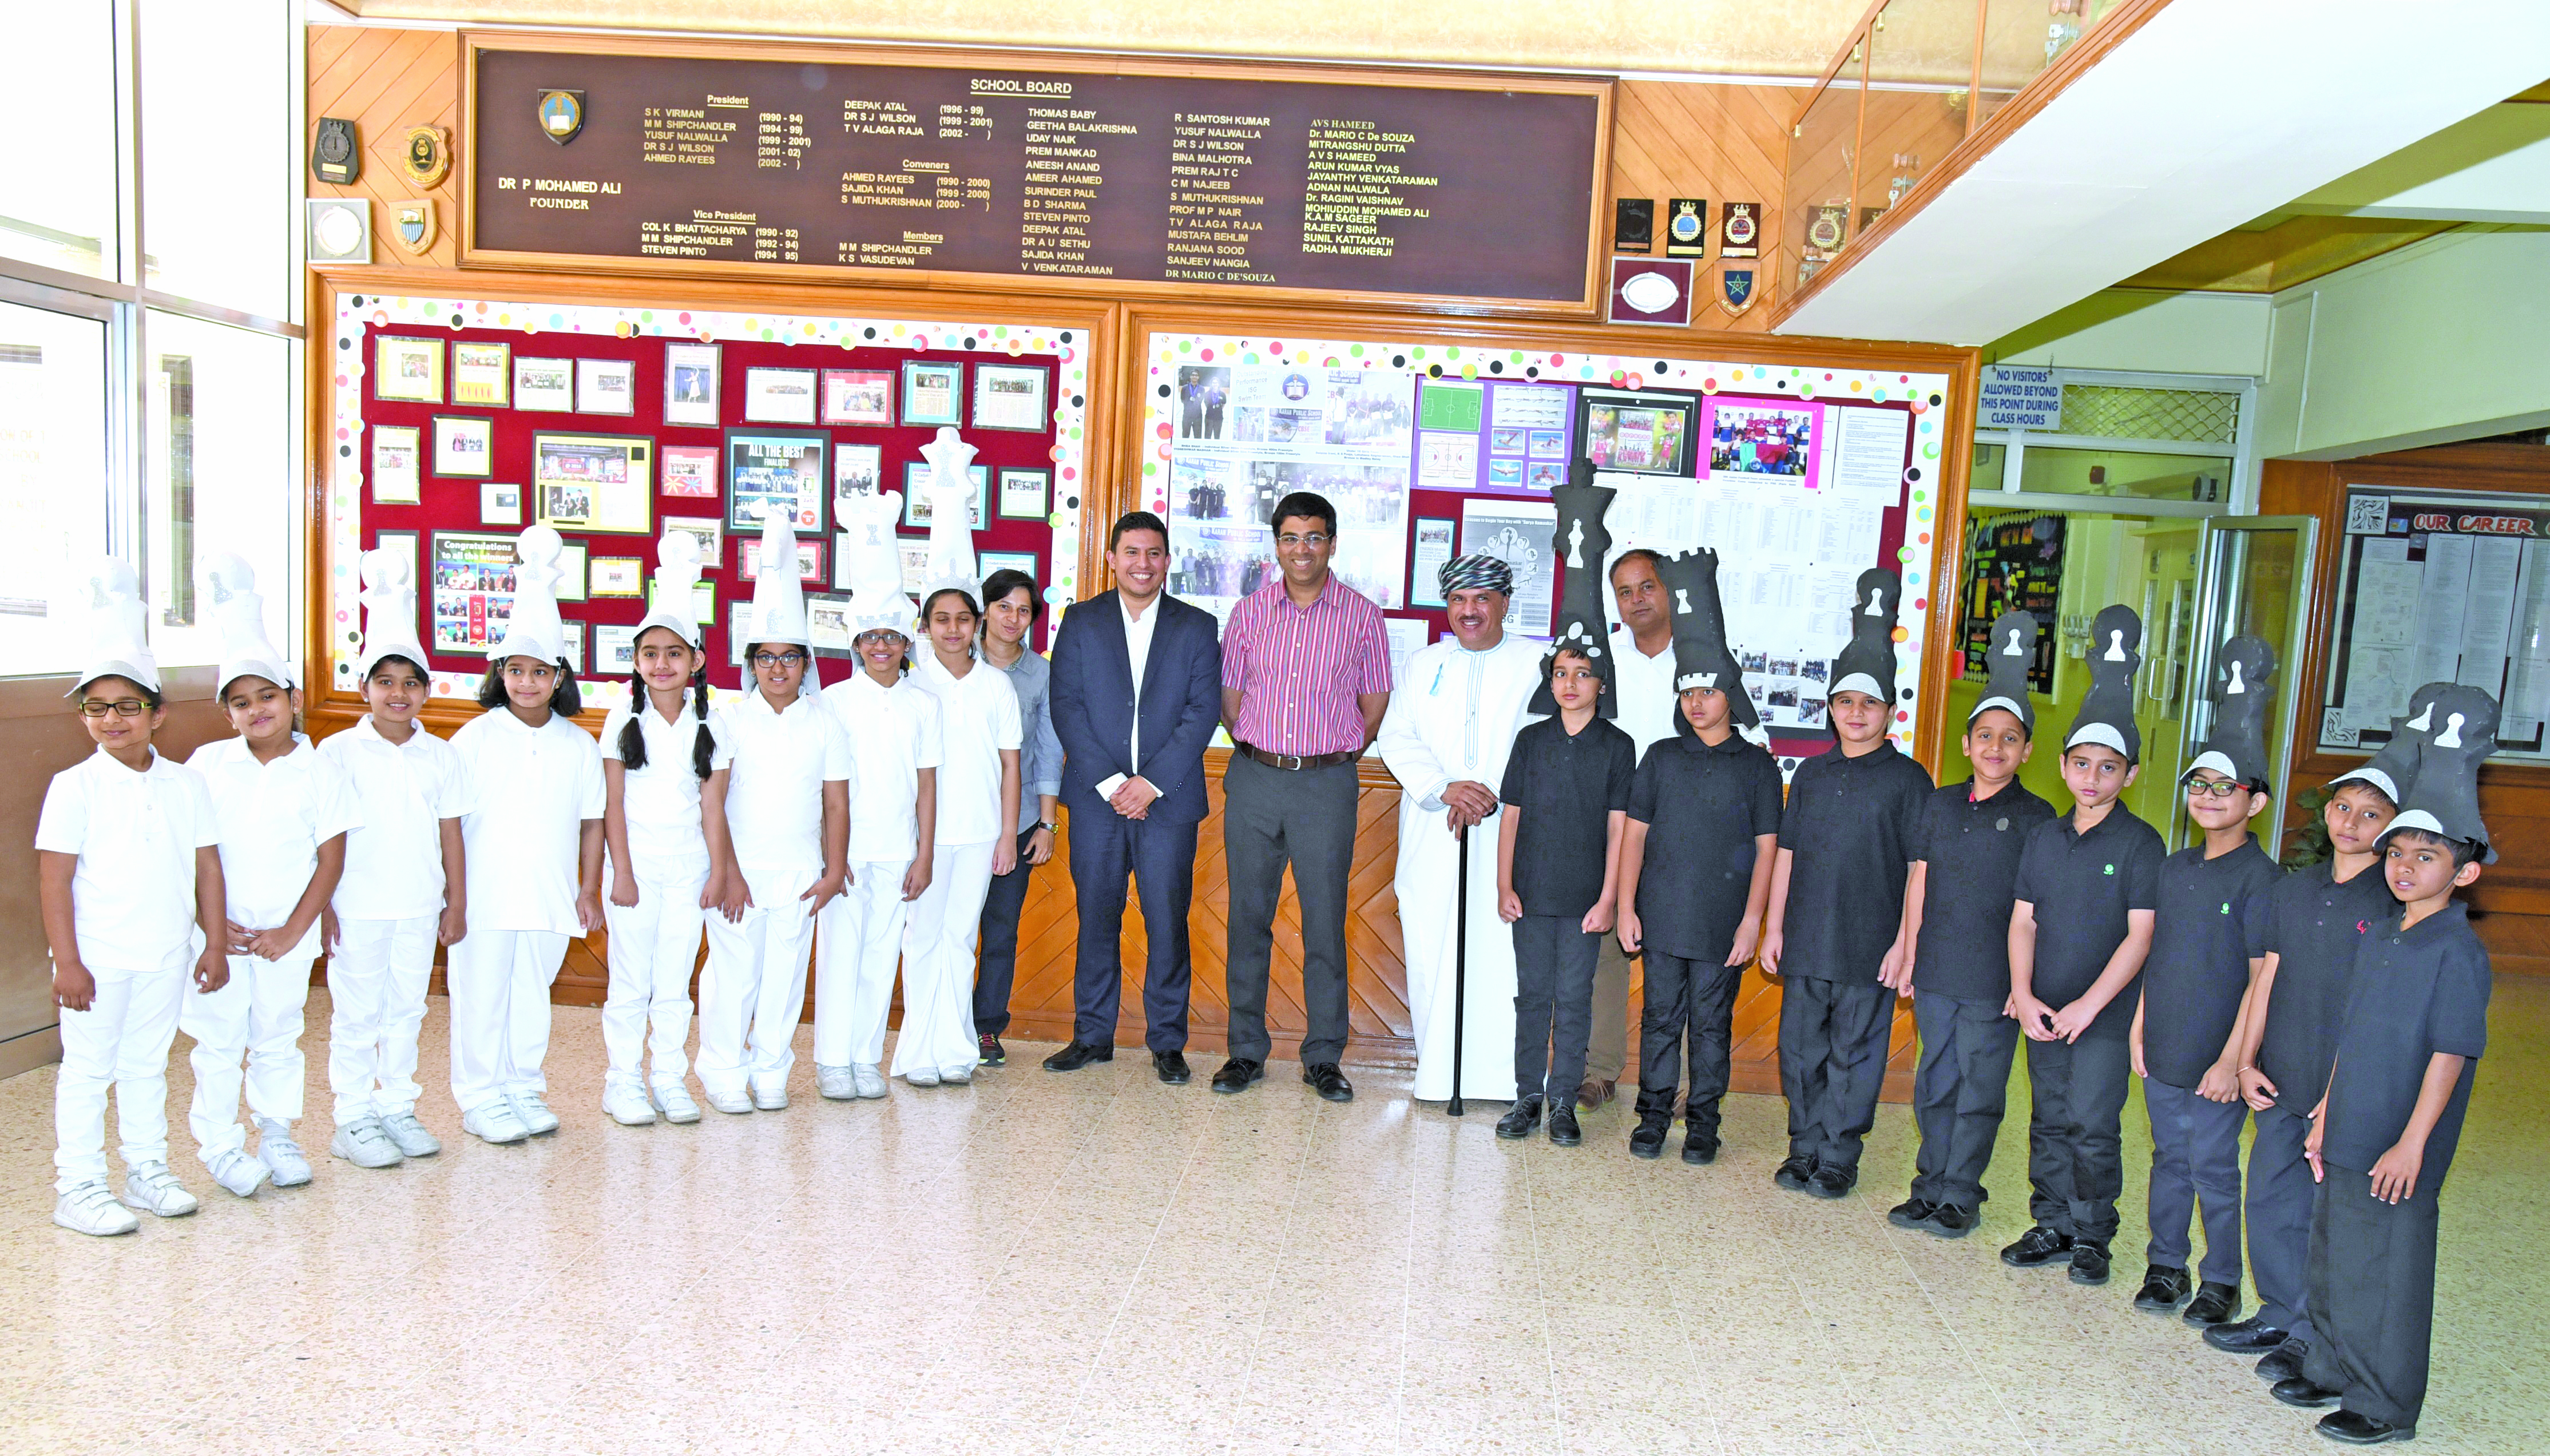 ISG students accord unique welcome to chess legend Anand